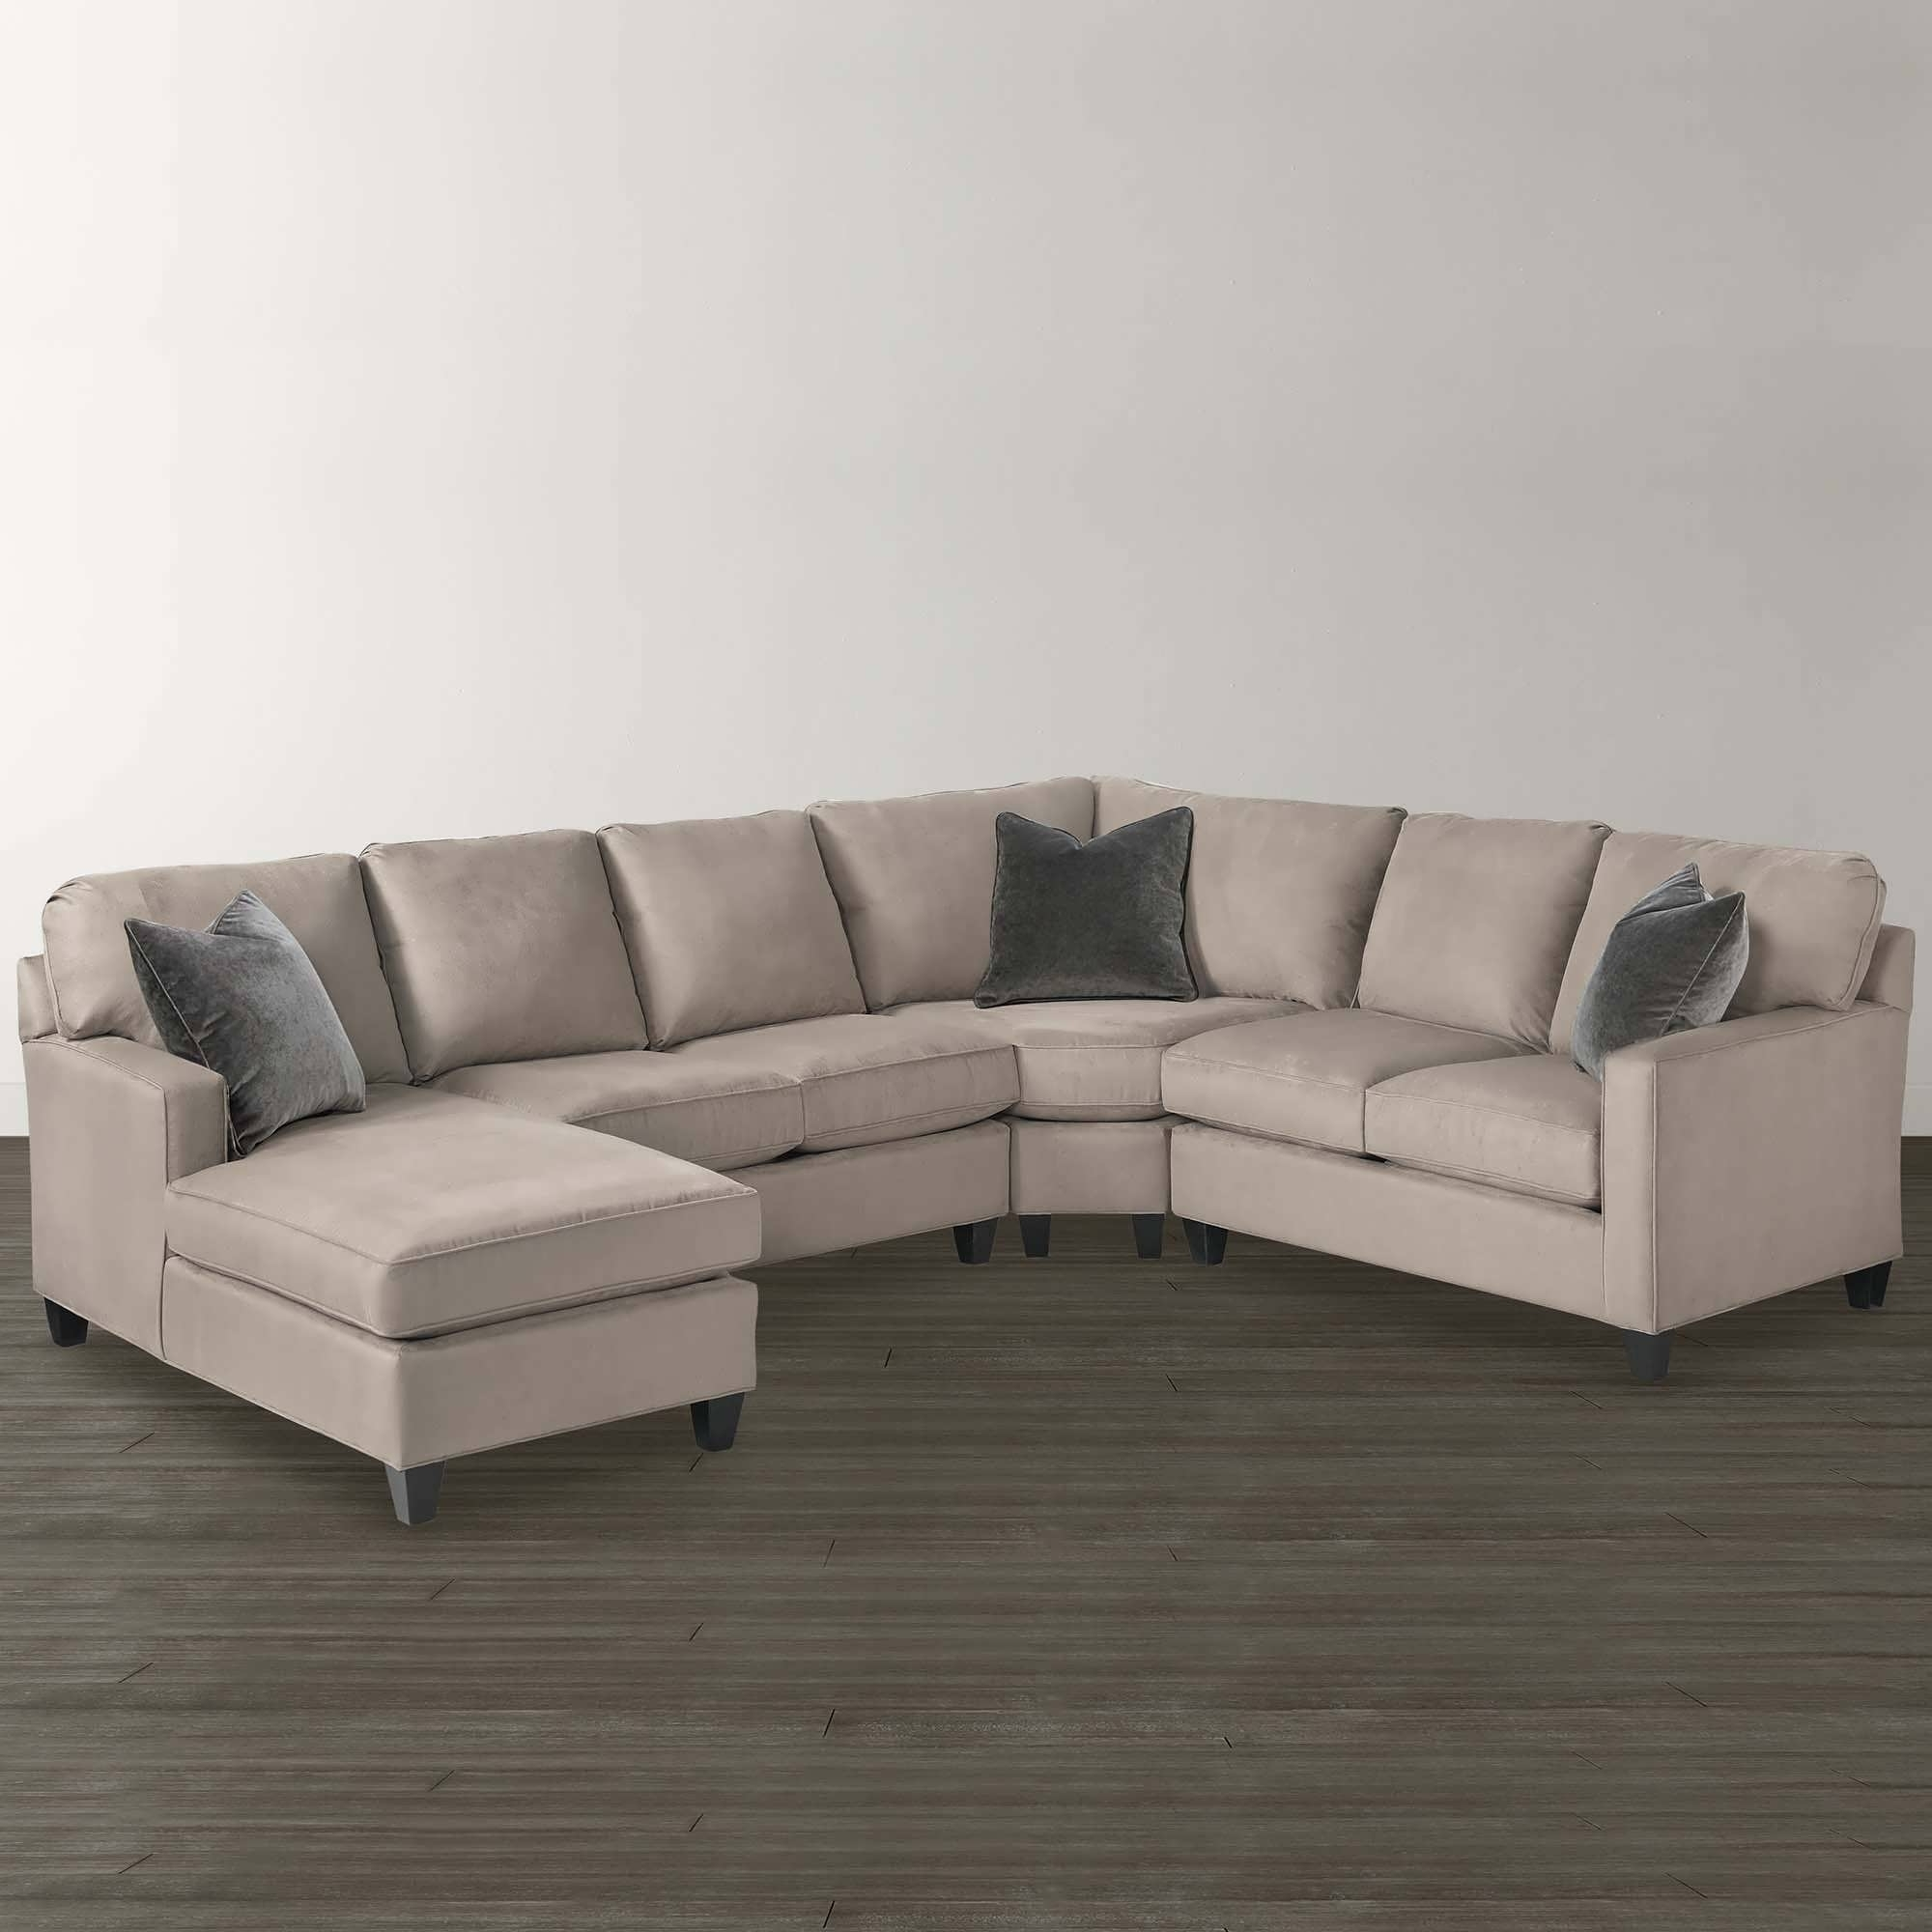 Sofa : Small Sectional Couch Small Reclining Sectional Chaise Sofa Inside Most Up To Date Leather Sectional Chaises (View 15 of 15)